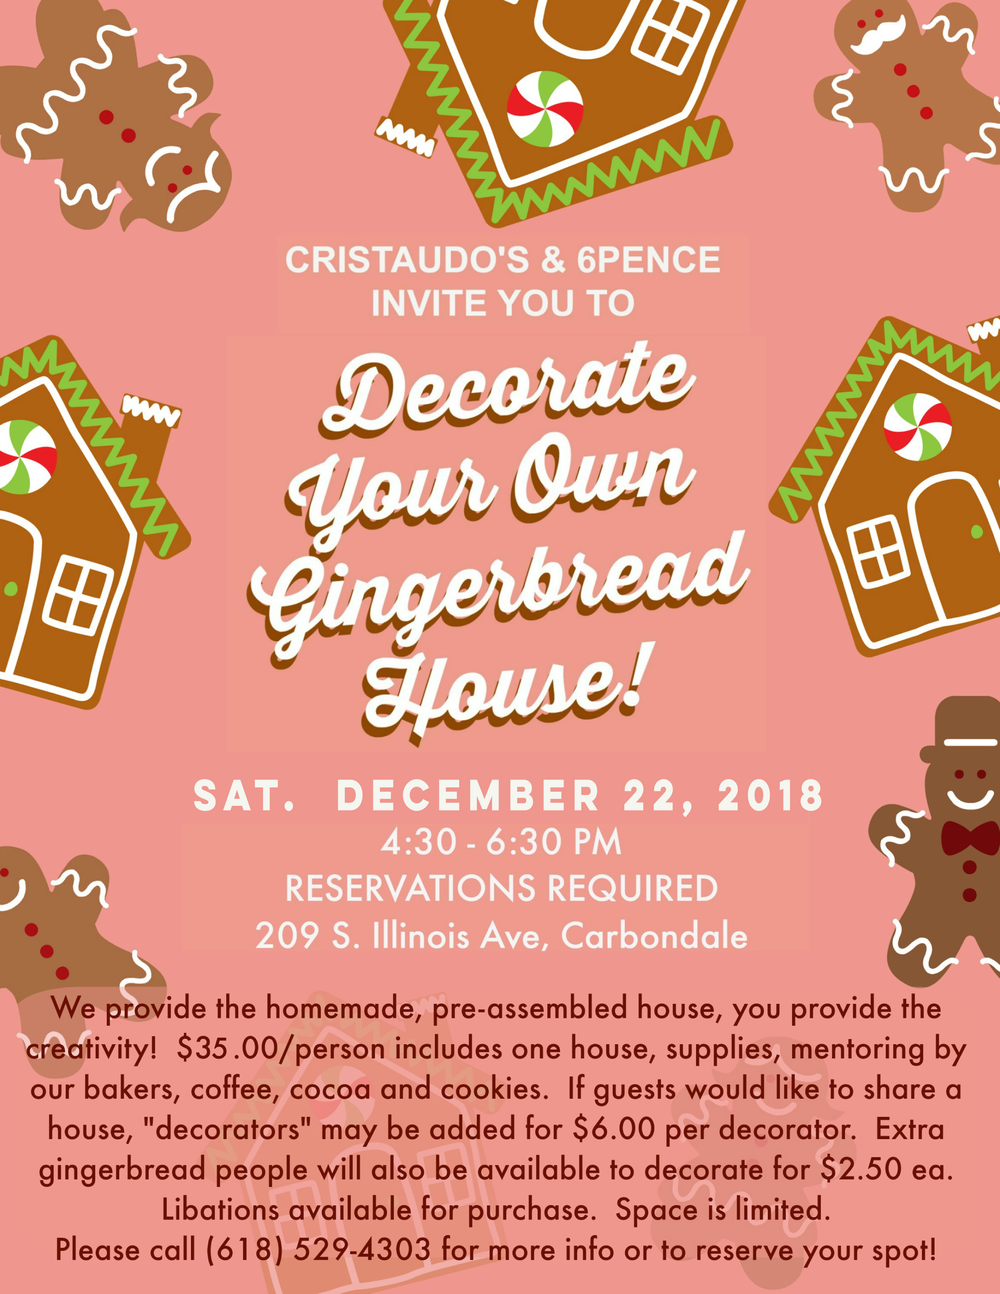 FINAL Gingerbread flyer, color.jpg